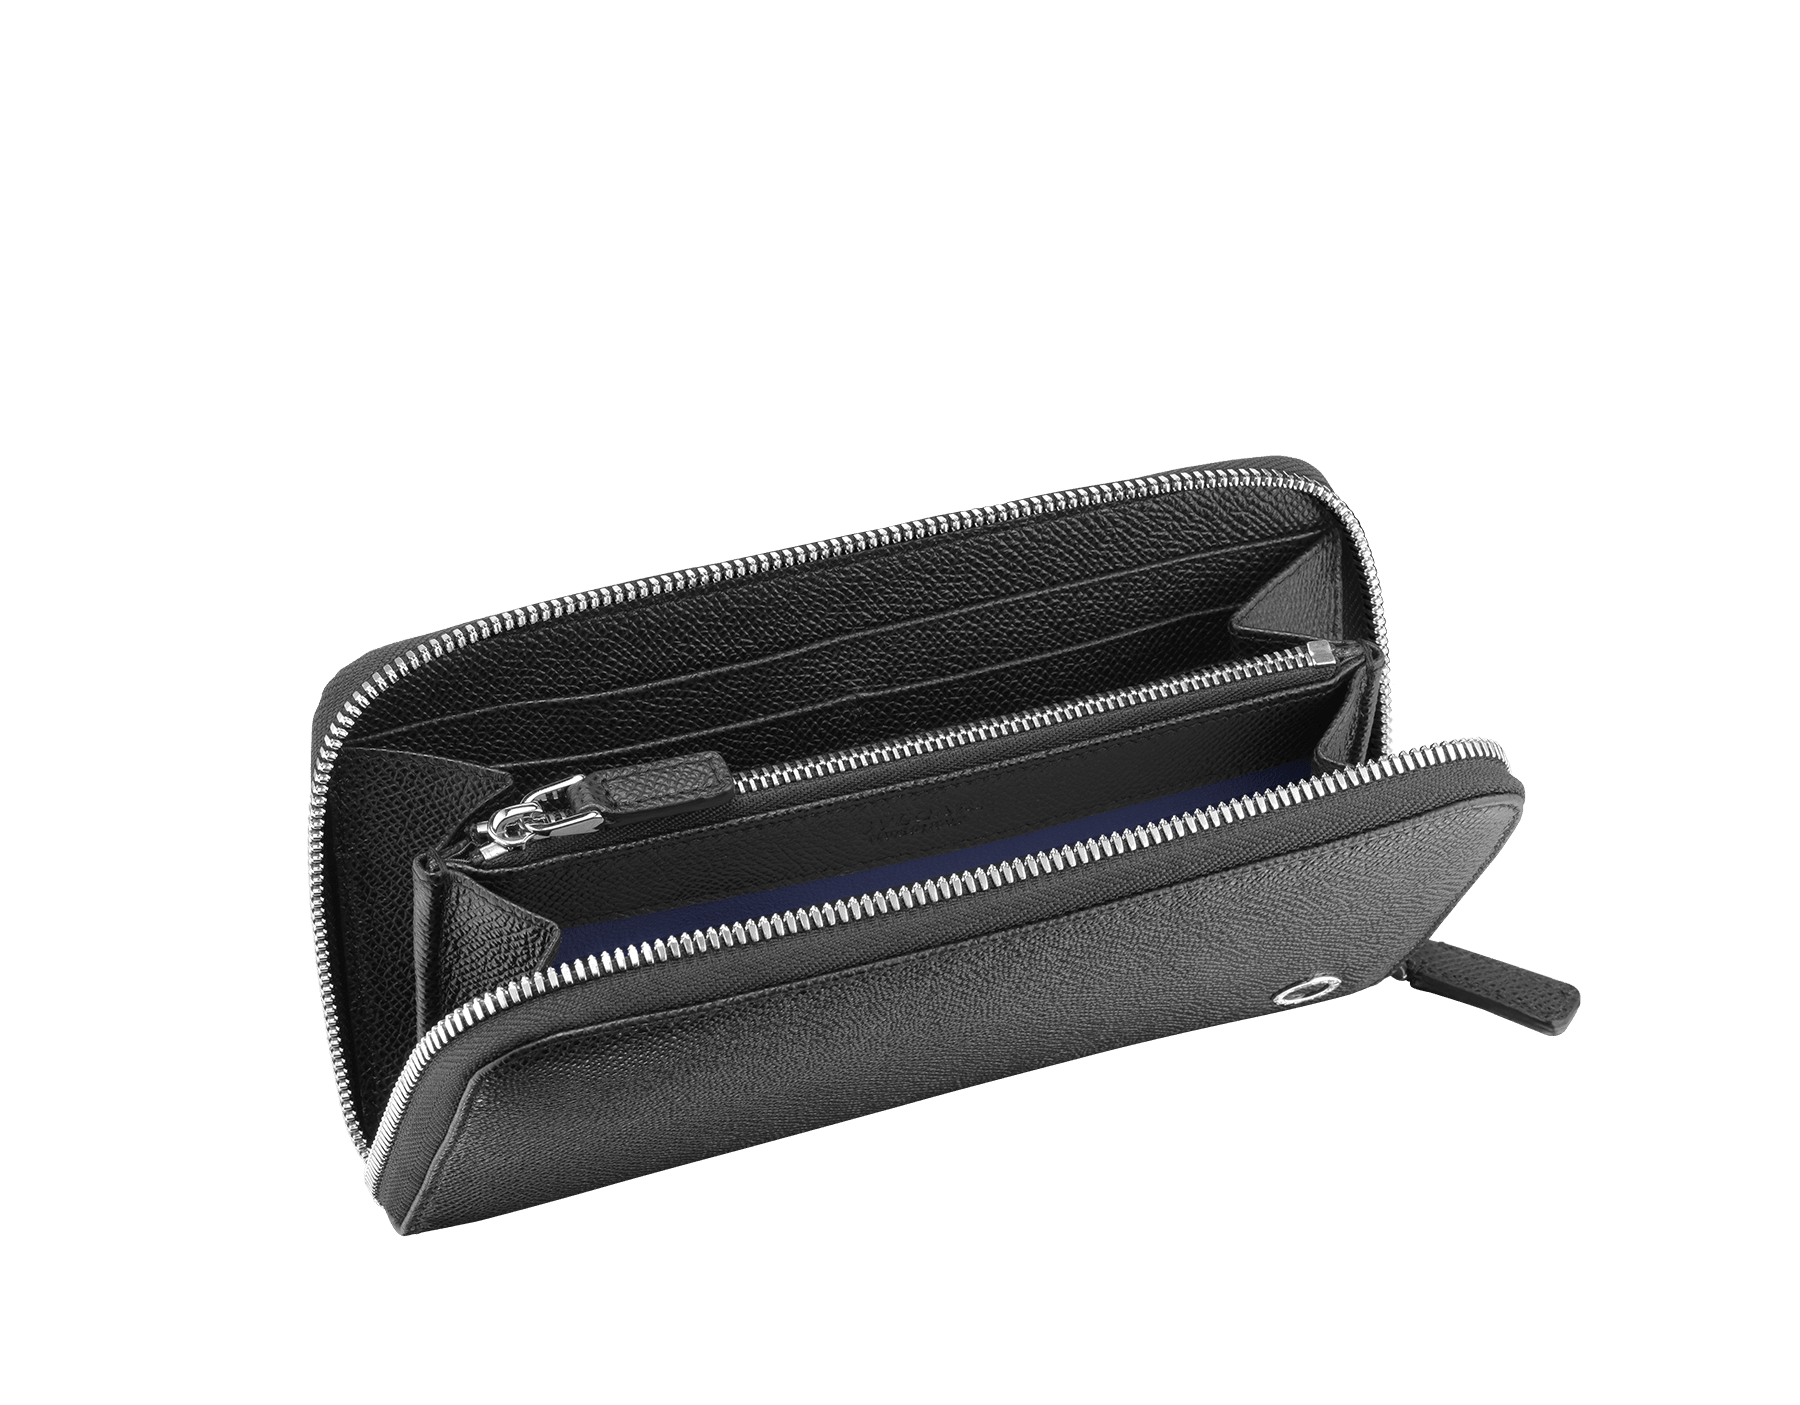 Zipped wallet in black grain calf leather with royal blue nappa lining. Brass palladium plated hardware featuring the Bvlgari-Bvlgari motif. Eight credit card slots, two internal compartments, one zipped coin case in the middle and two additional compartments. Zip-around closure. 282347 image 2